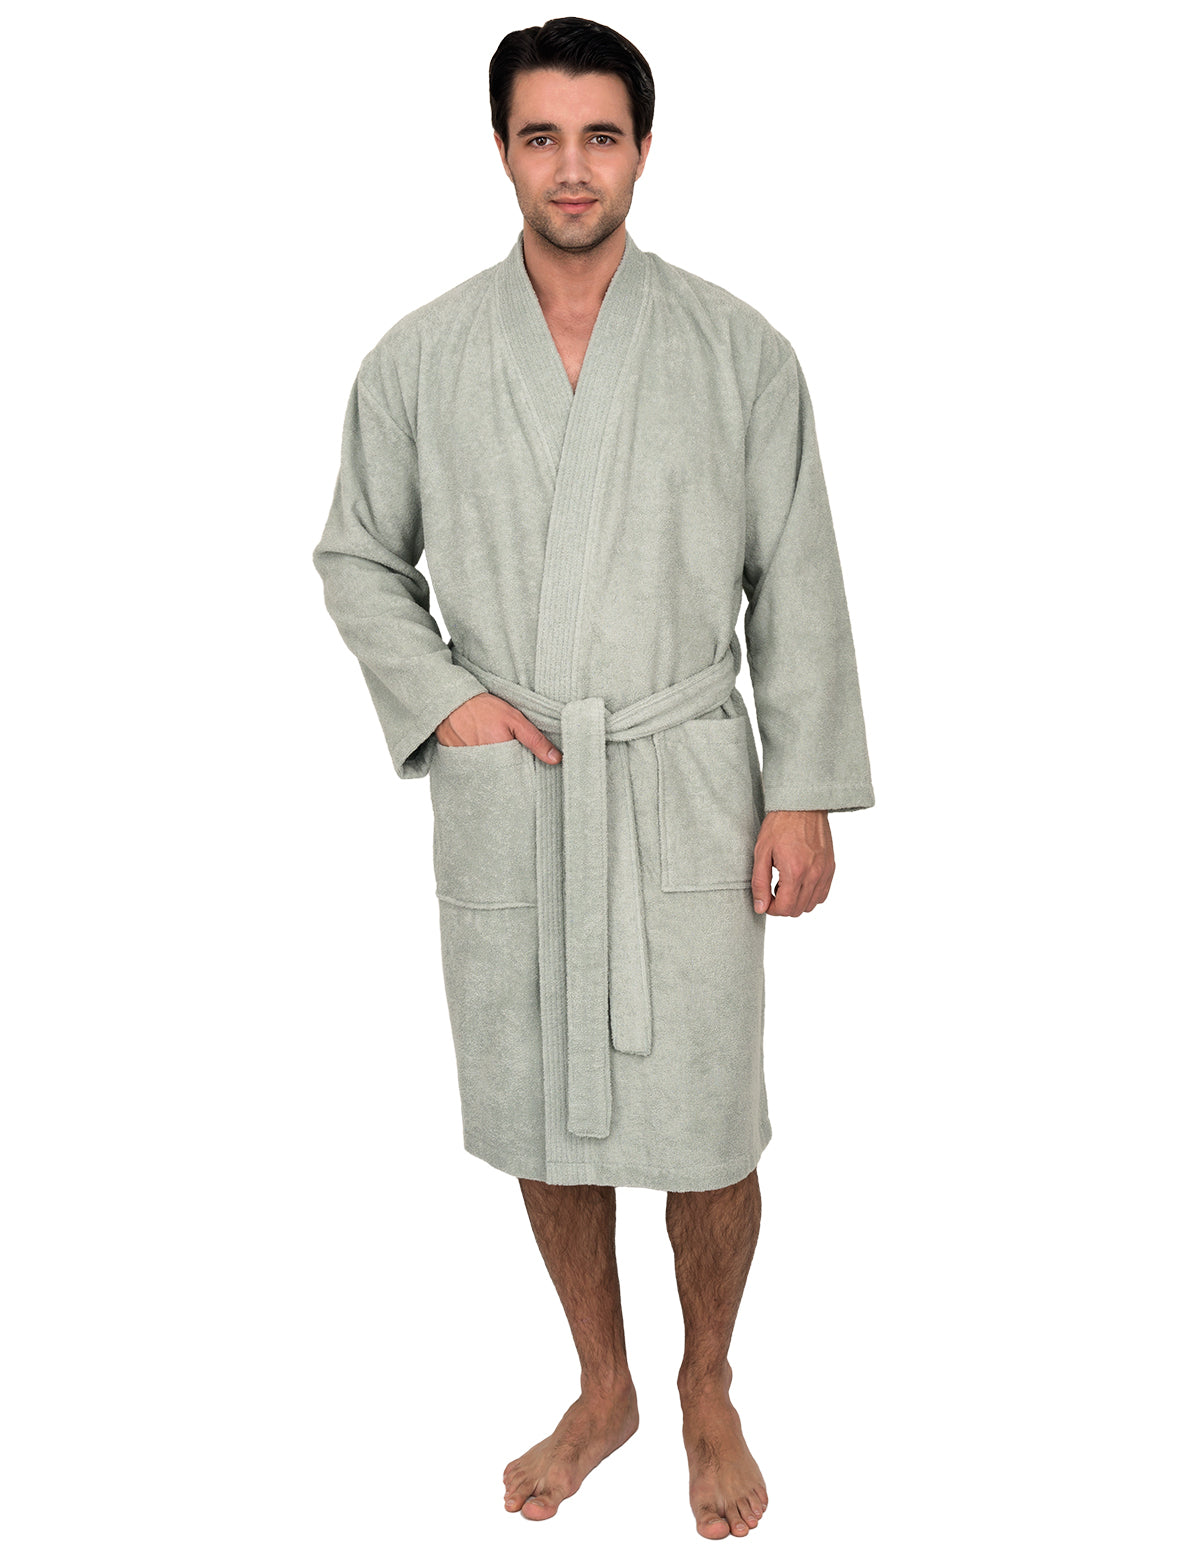 Towelselections Men S Robe Turkish Cotton Terry Kimono Bathrobe Made In Turkey Robes Men